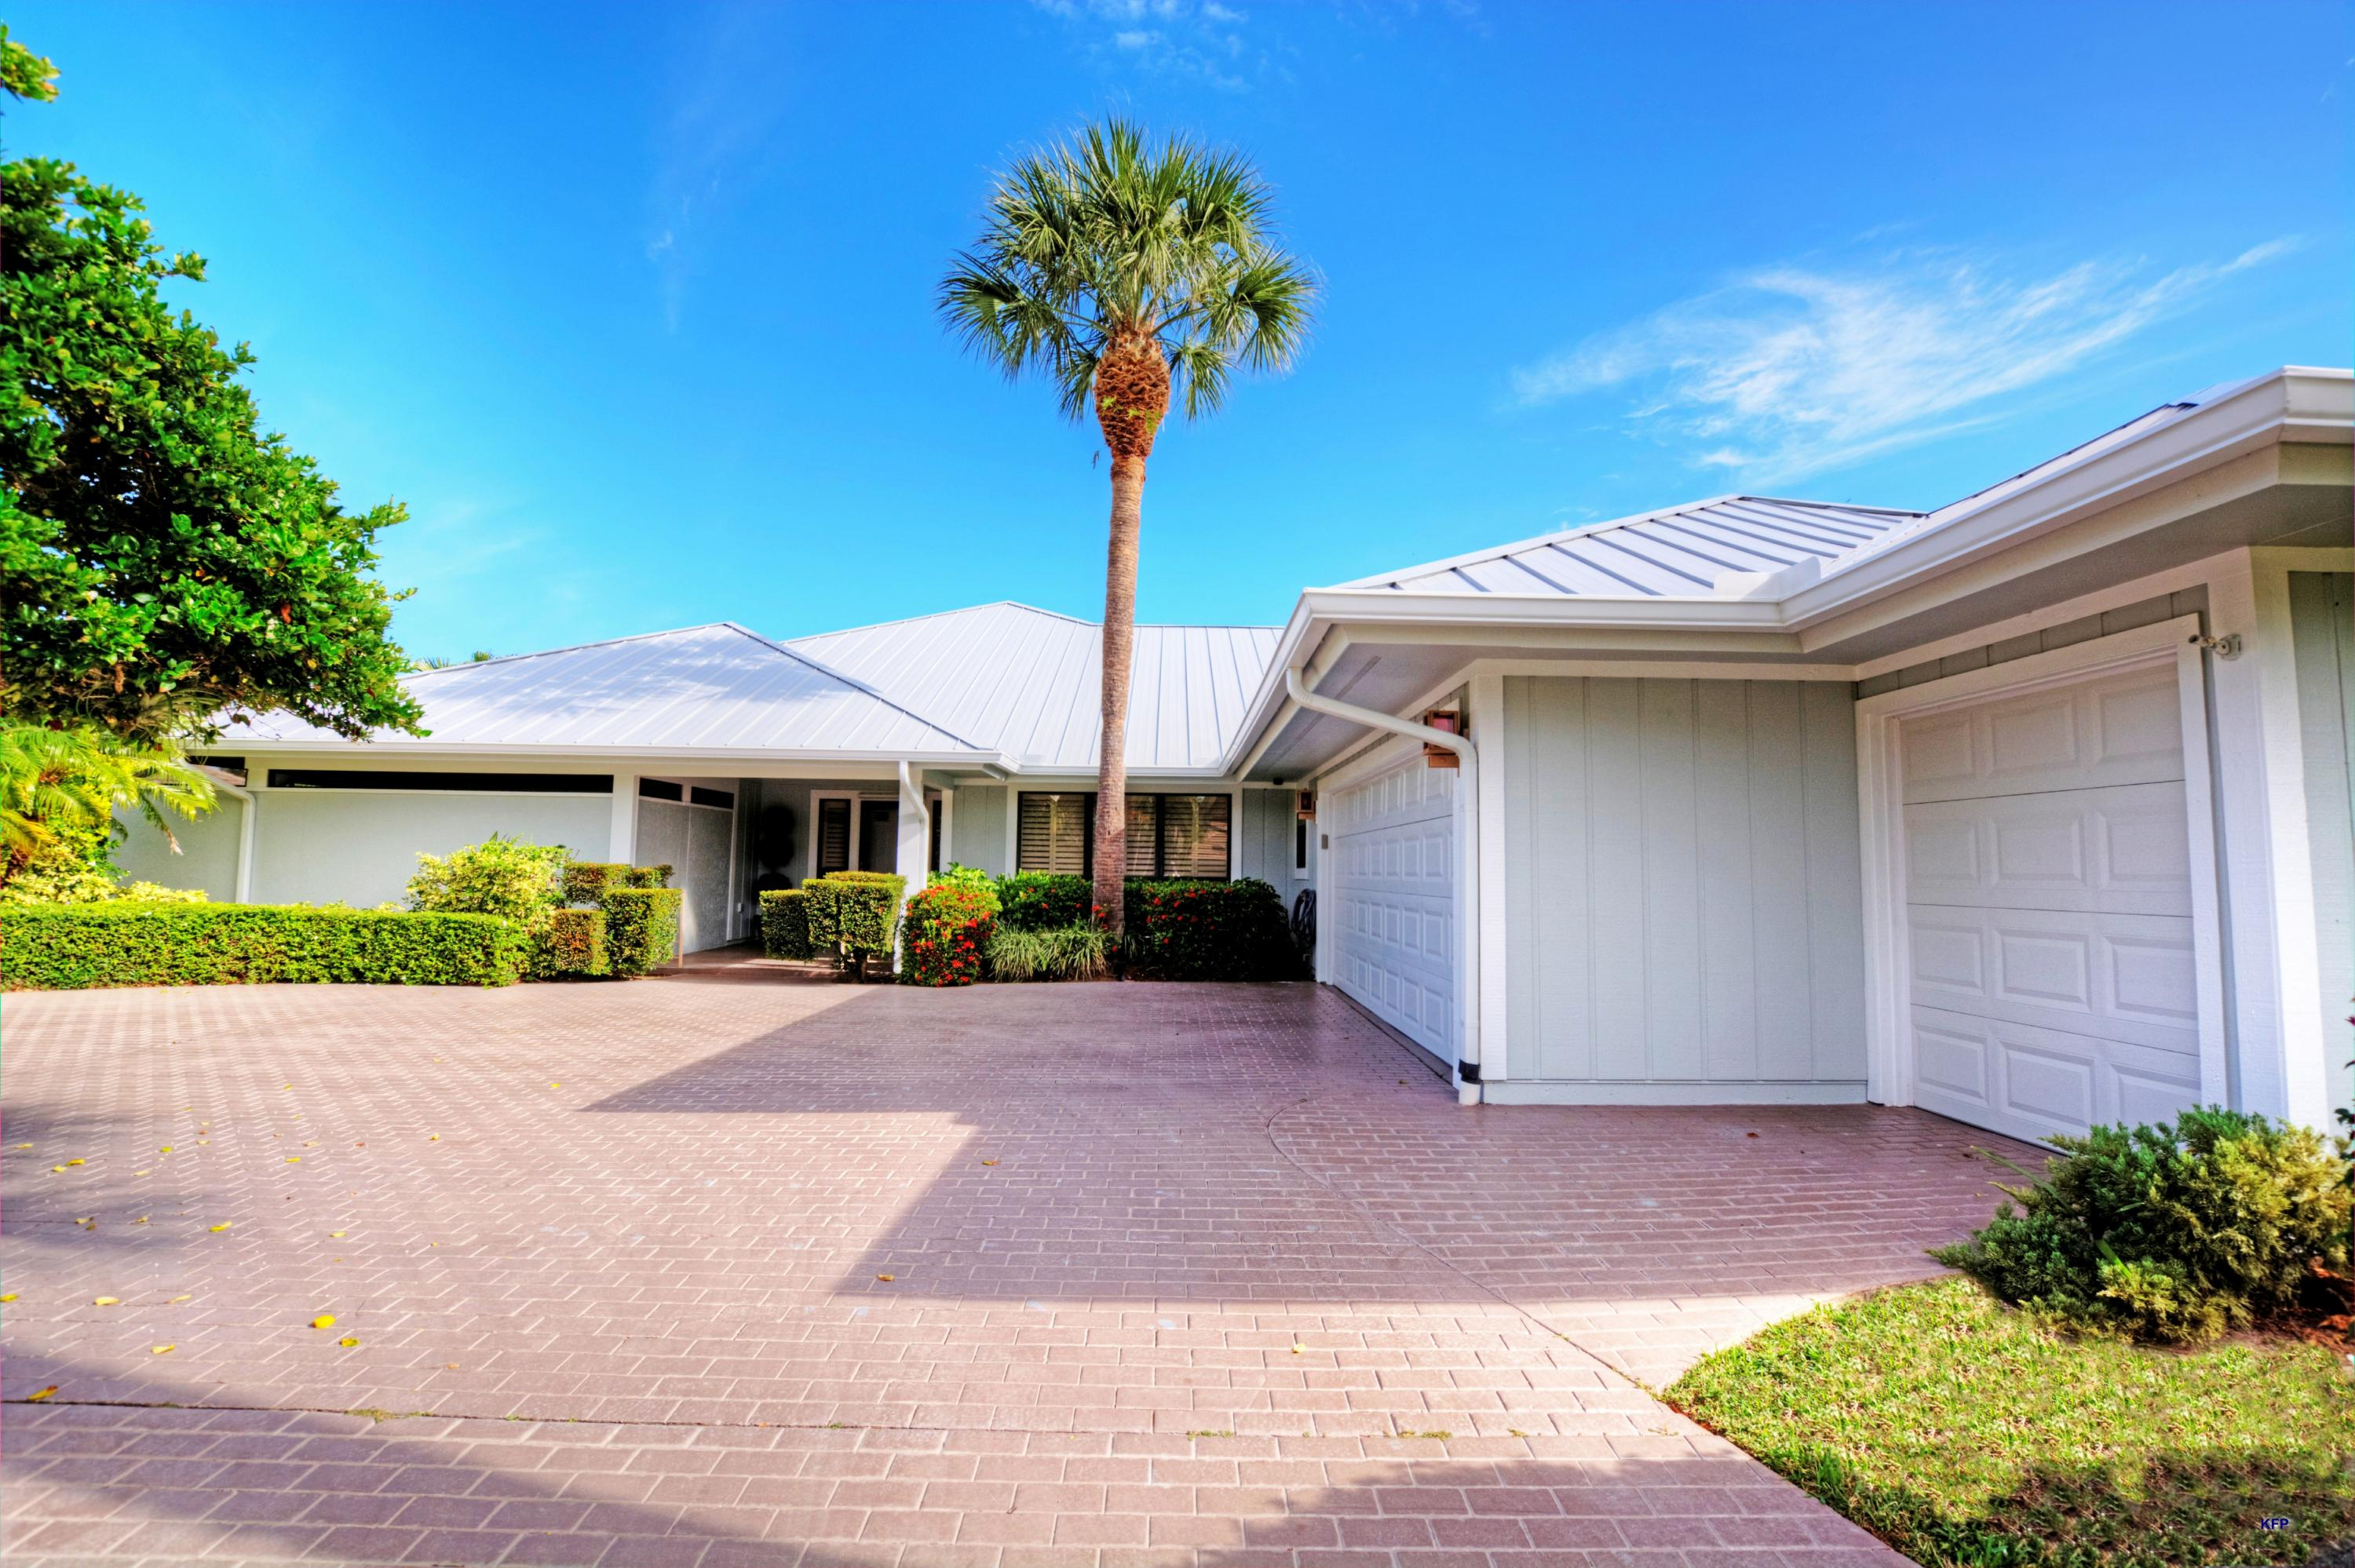 6191 Winged Foot Drive, Stuart, Florida 34997, 3 Bedrooms Bedrooms, ,2 BathroomsBathrooms,A,Single family,Winged Foot,RX-10530565